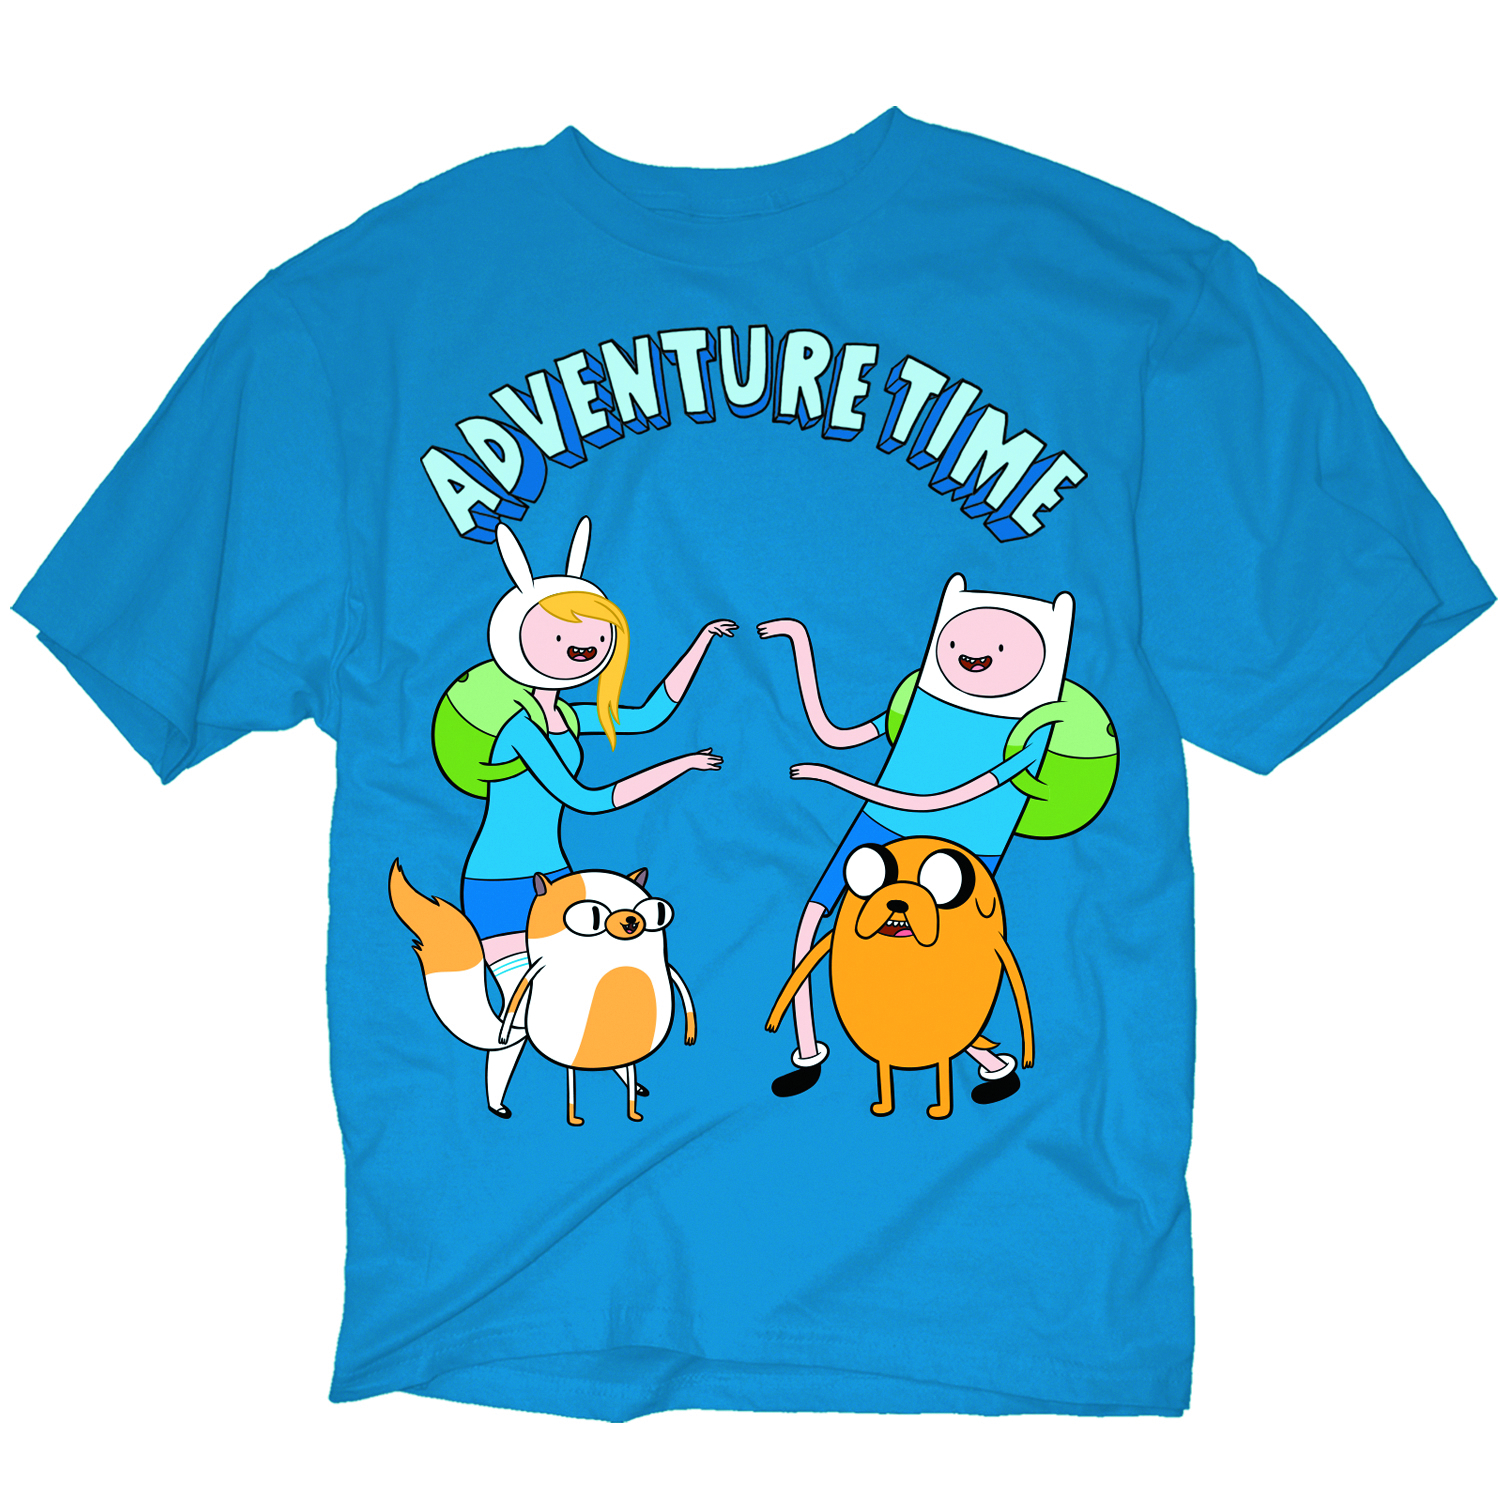 ADVENTURE TWINS PX BLUE T/S SM